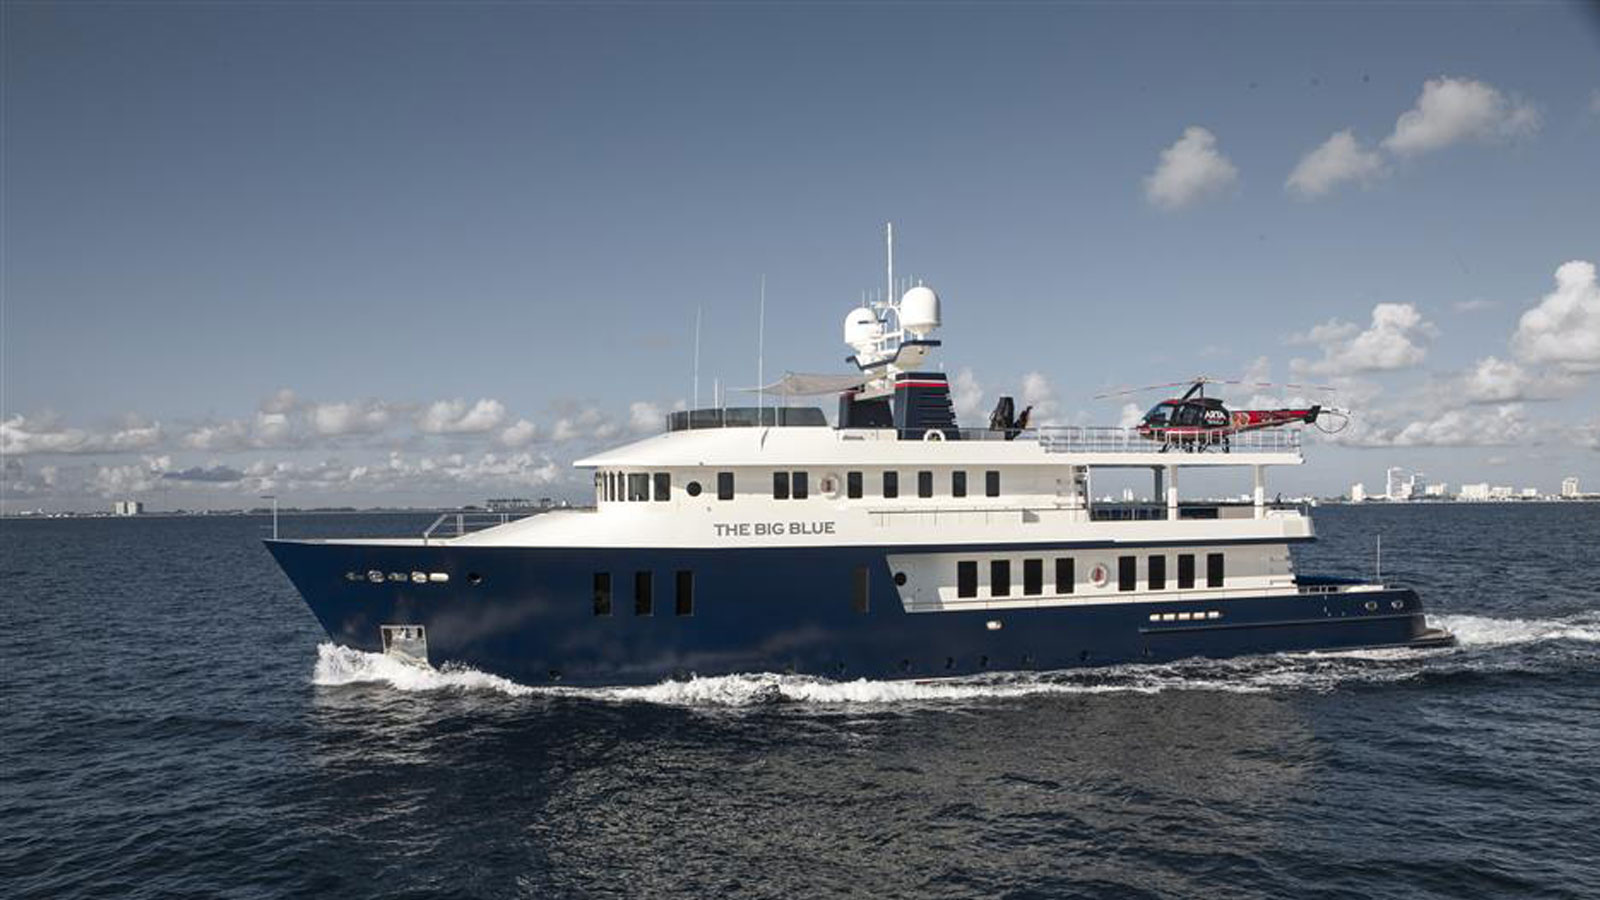 Luxury motor yacht The Big Blue at sea